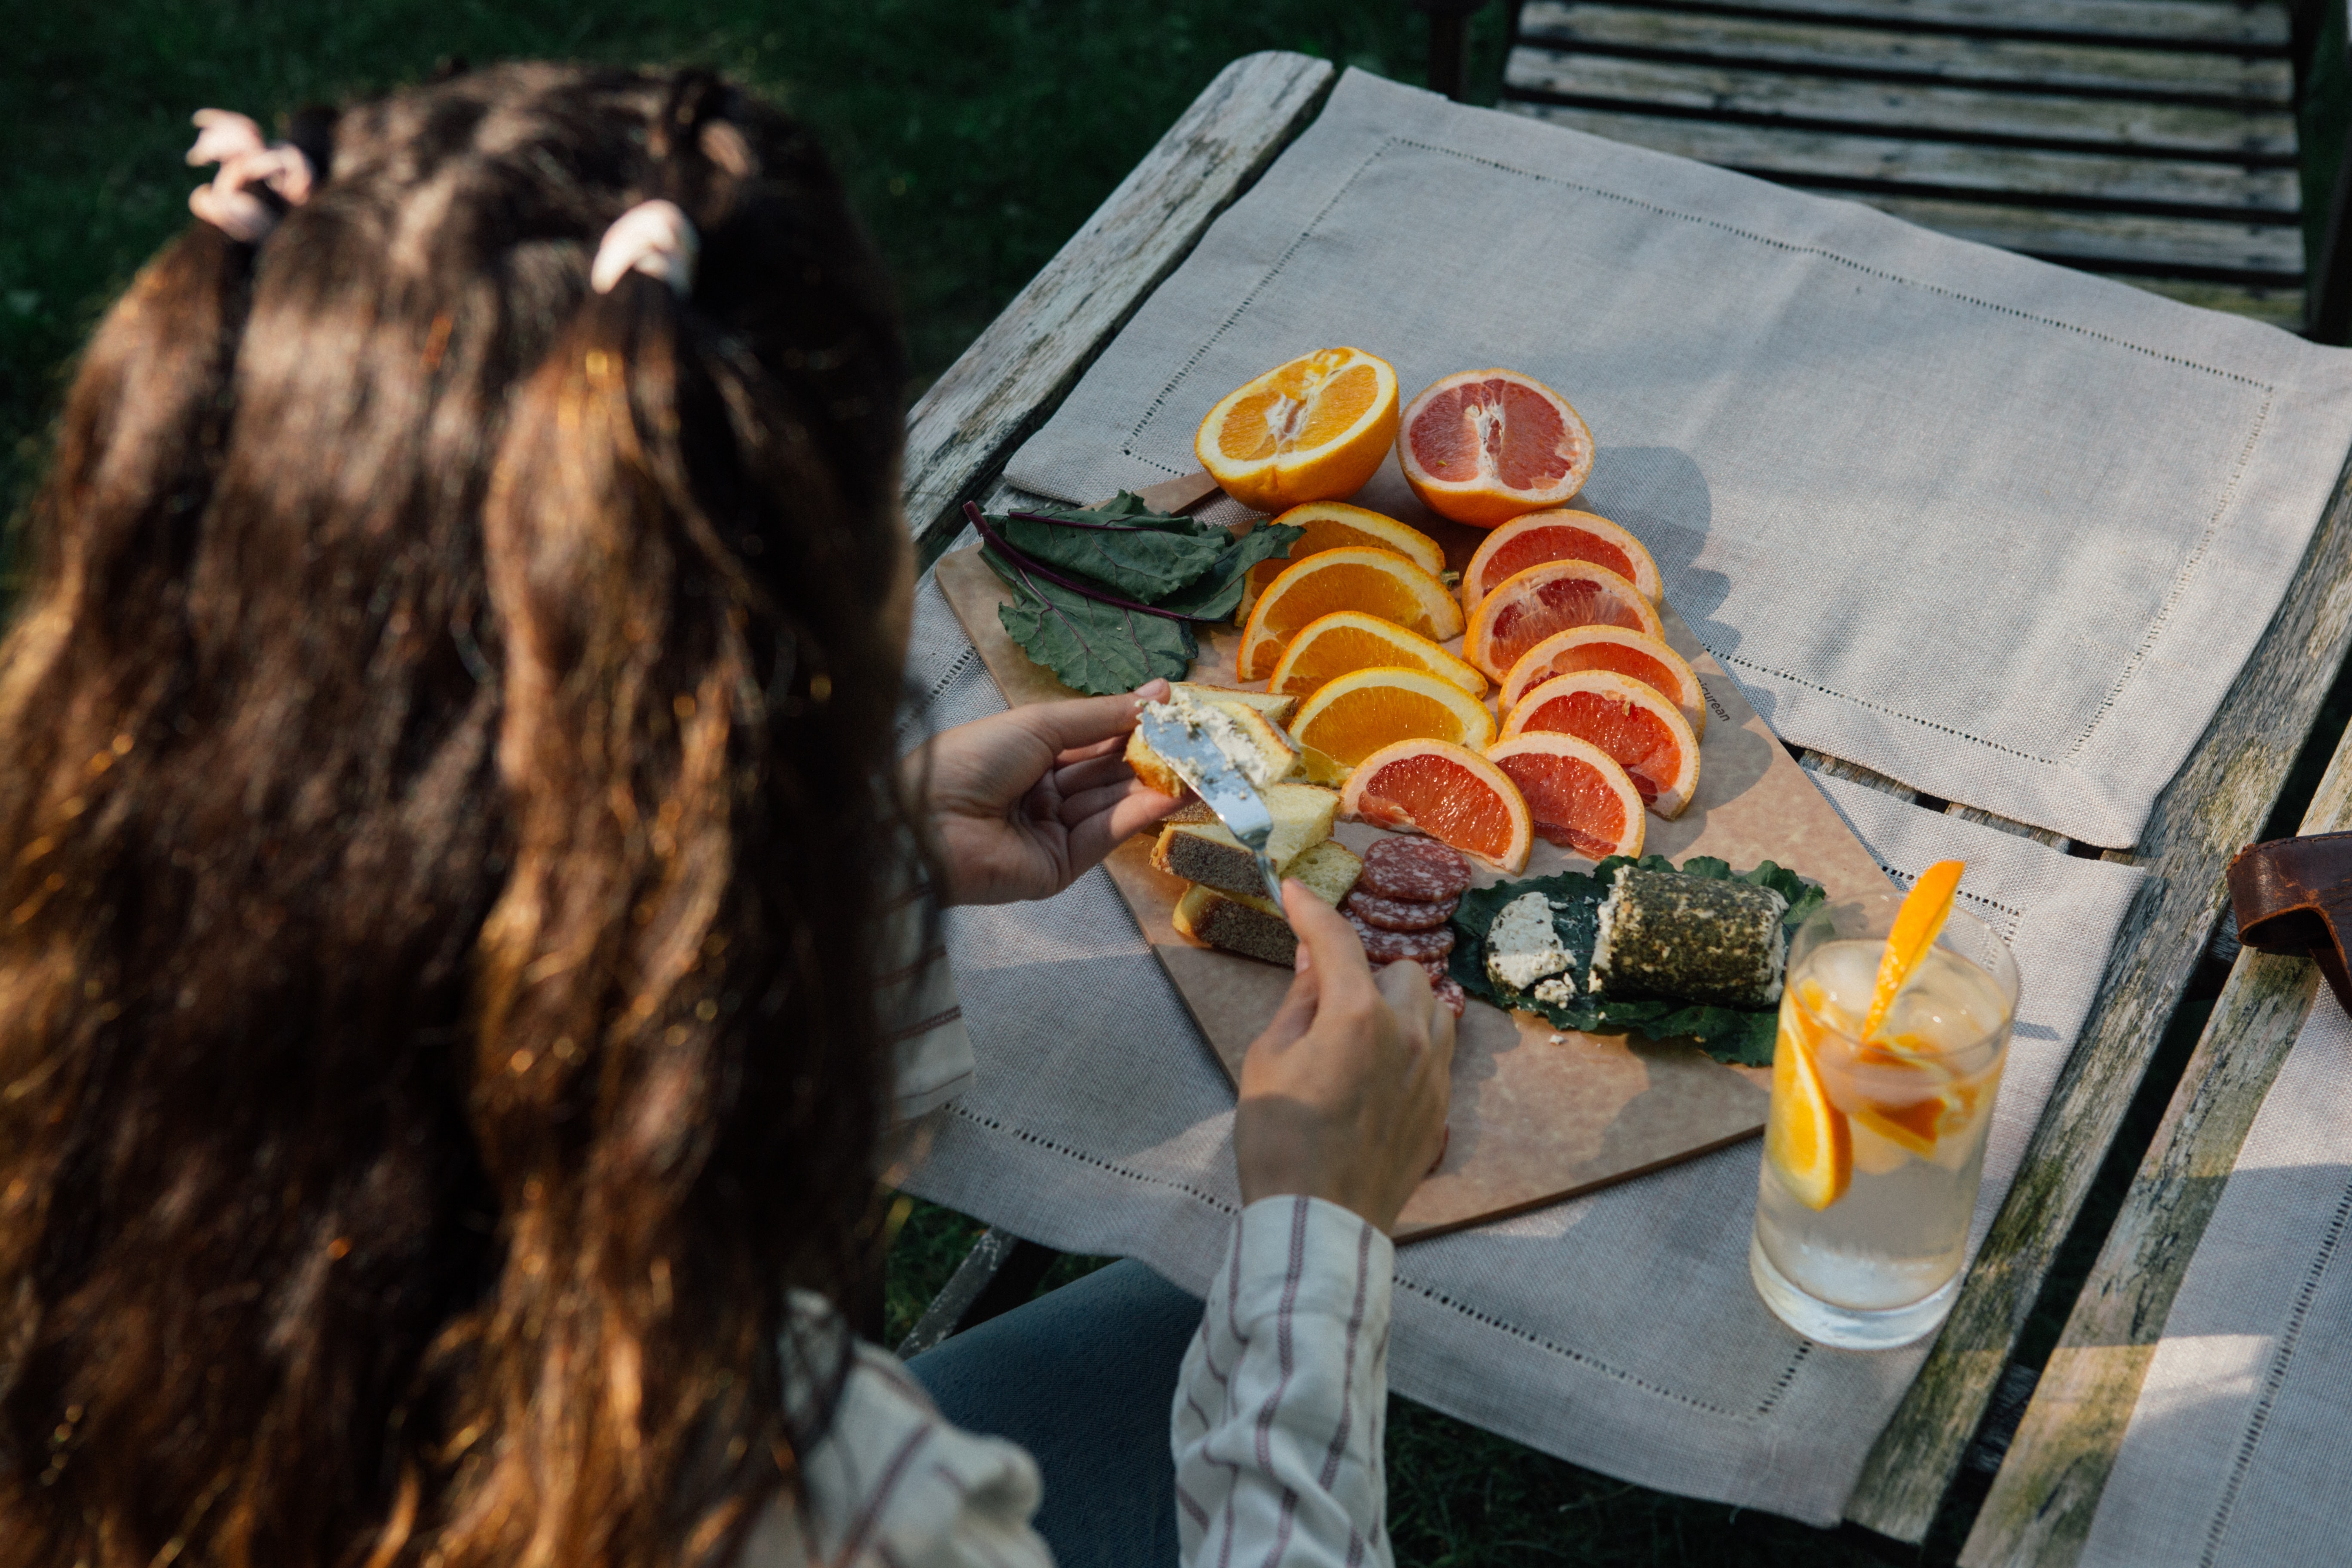 person holding slice fruits near gray wooden table close-up photo